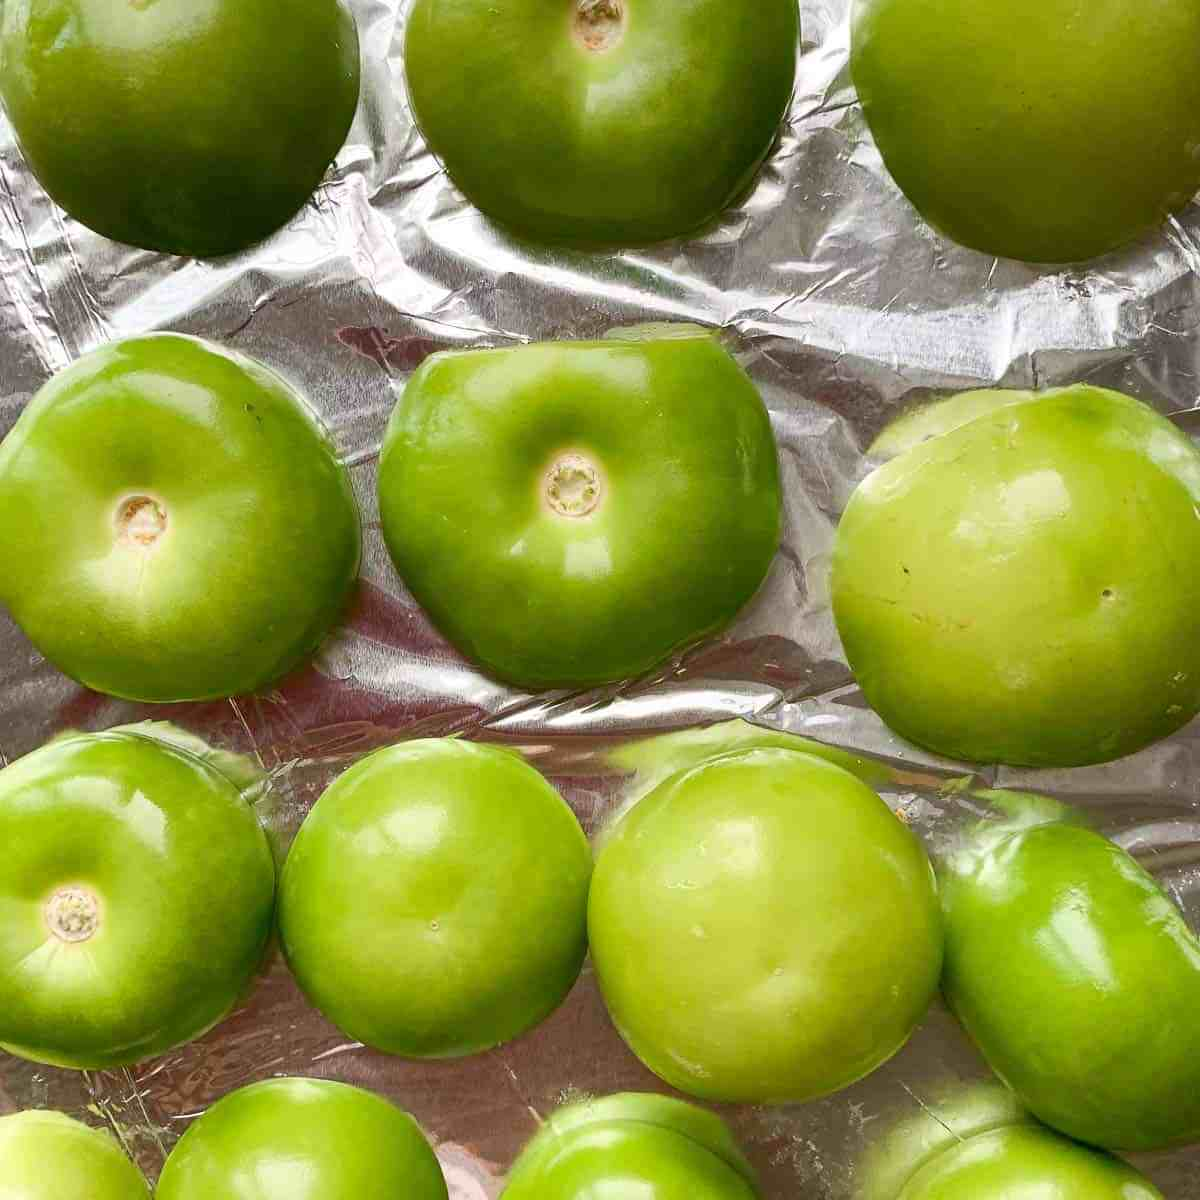 Tomatillos on a foil-lined baking sheet